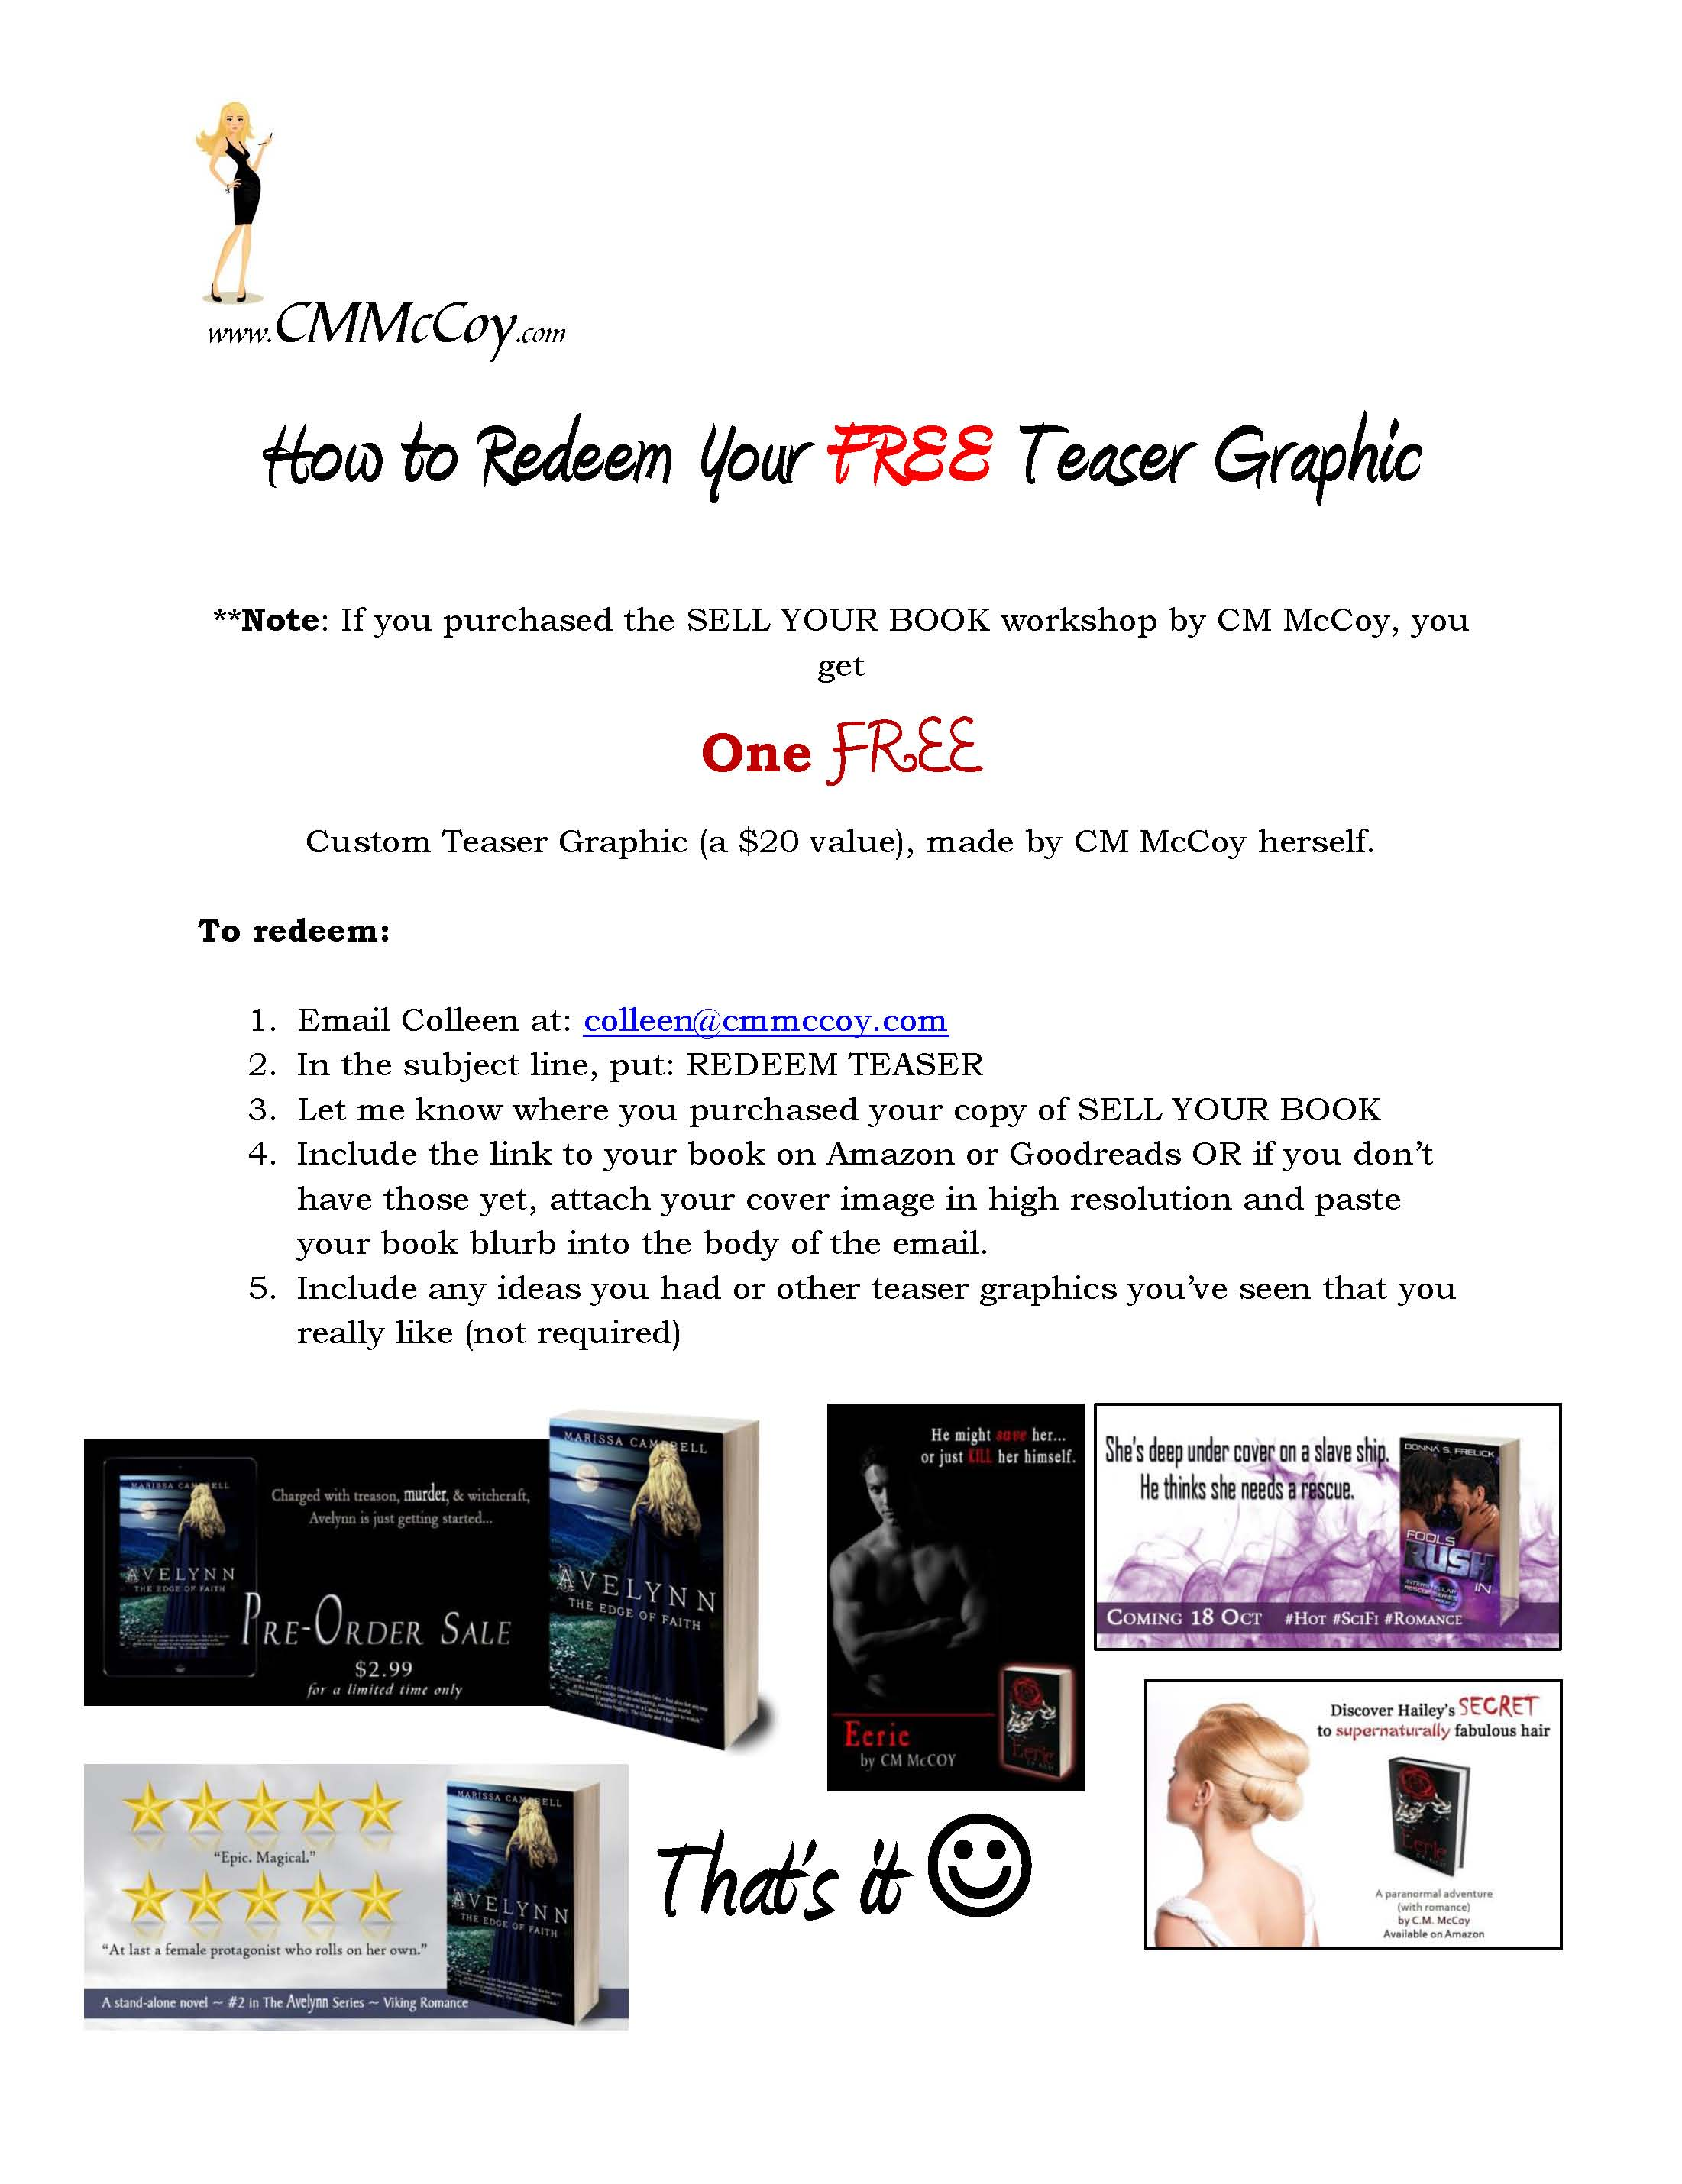 how-to-redeam-your-free-custom-teaser-graphics